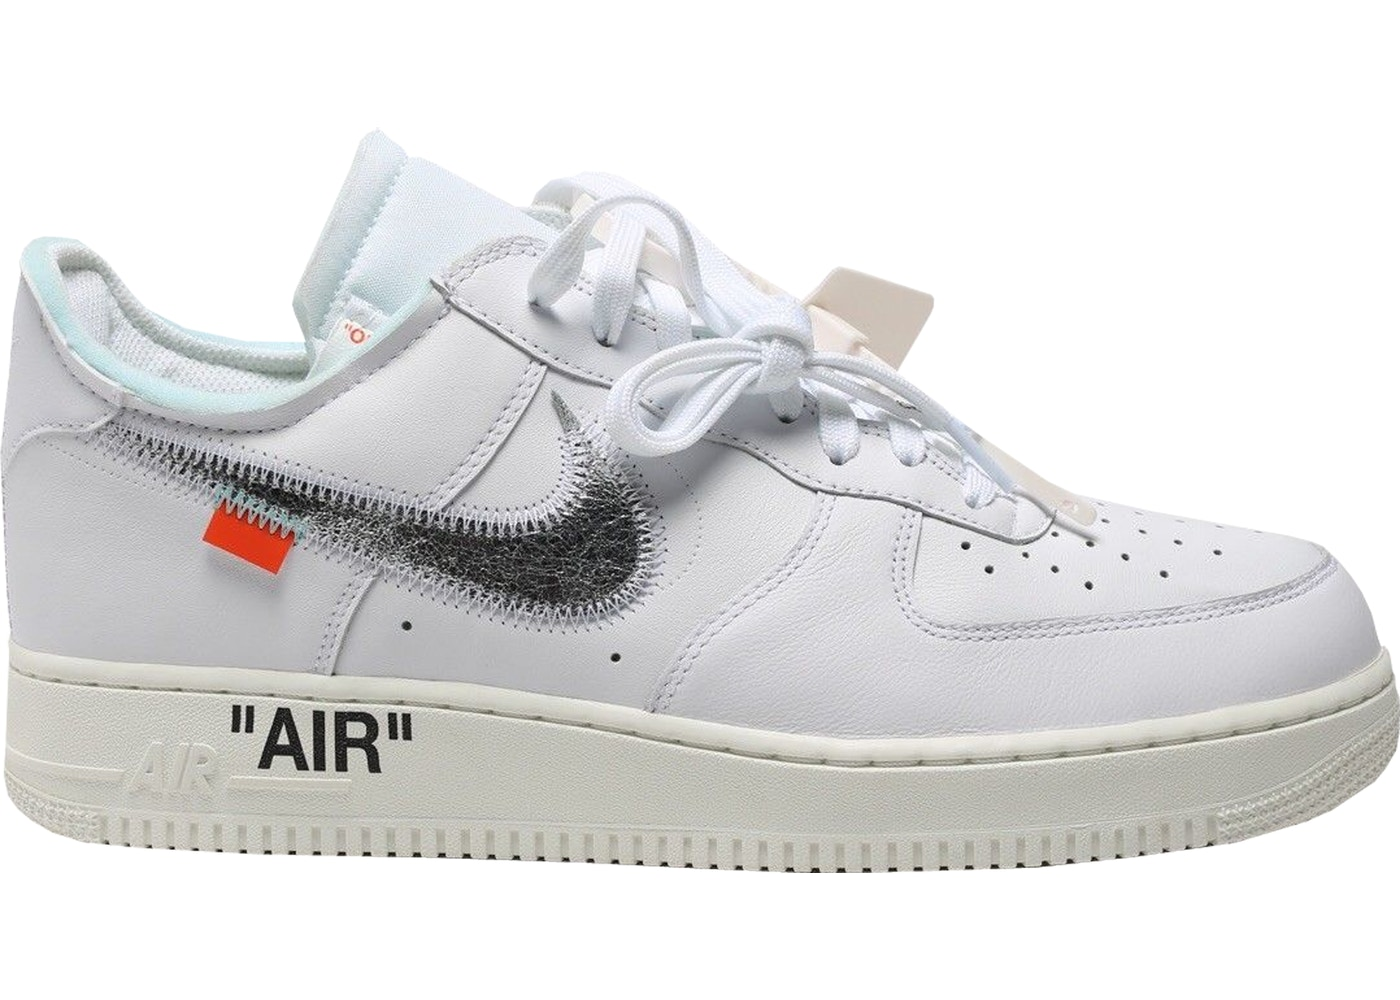 sneaker air force 1 off white